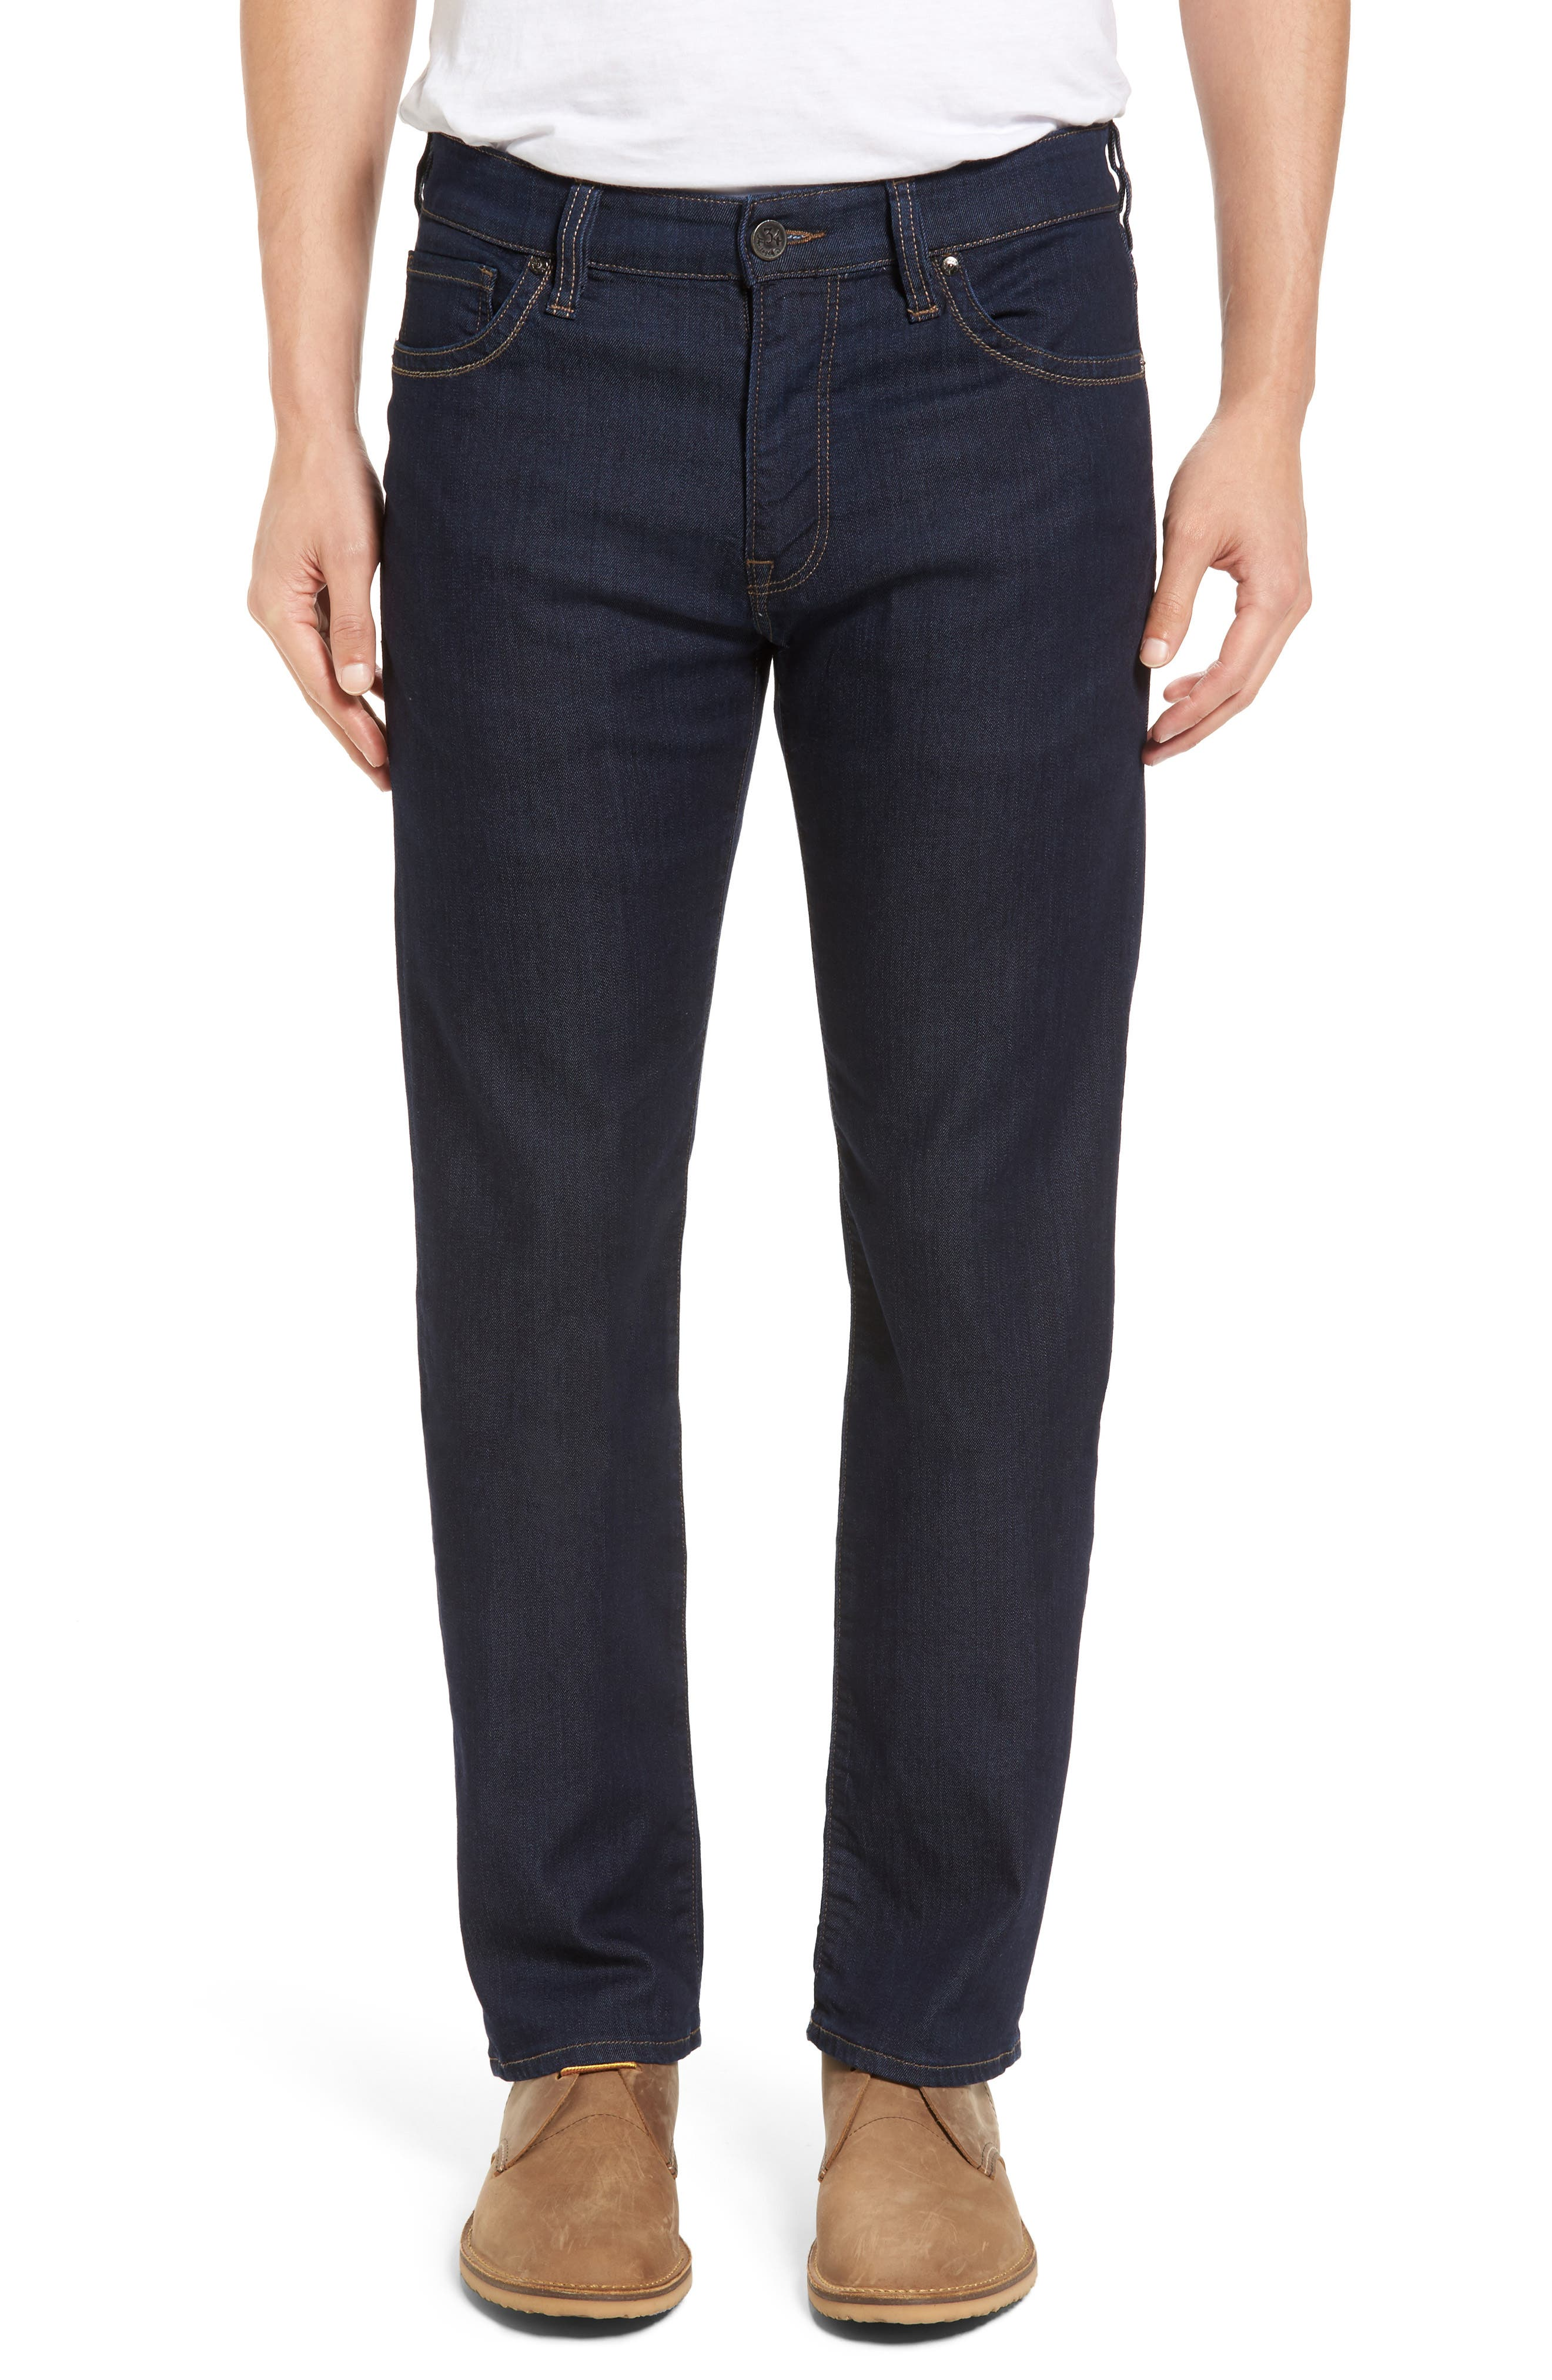 34 Heritage Courage Straight Leg Jeans (Rinse Vintage)